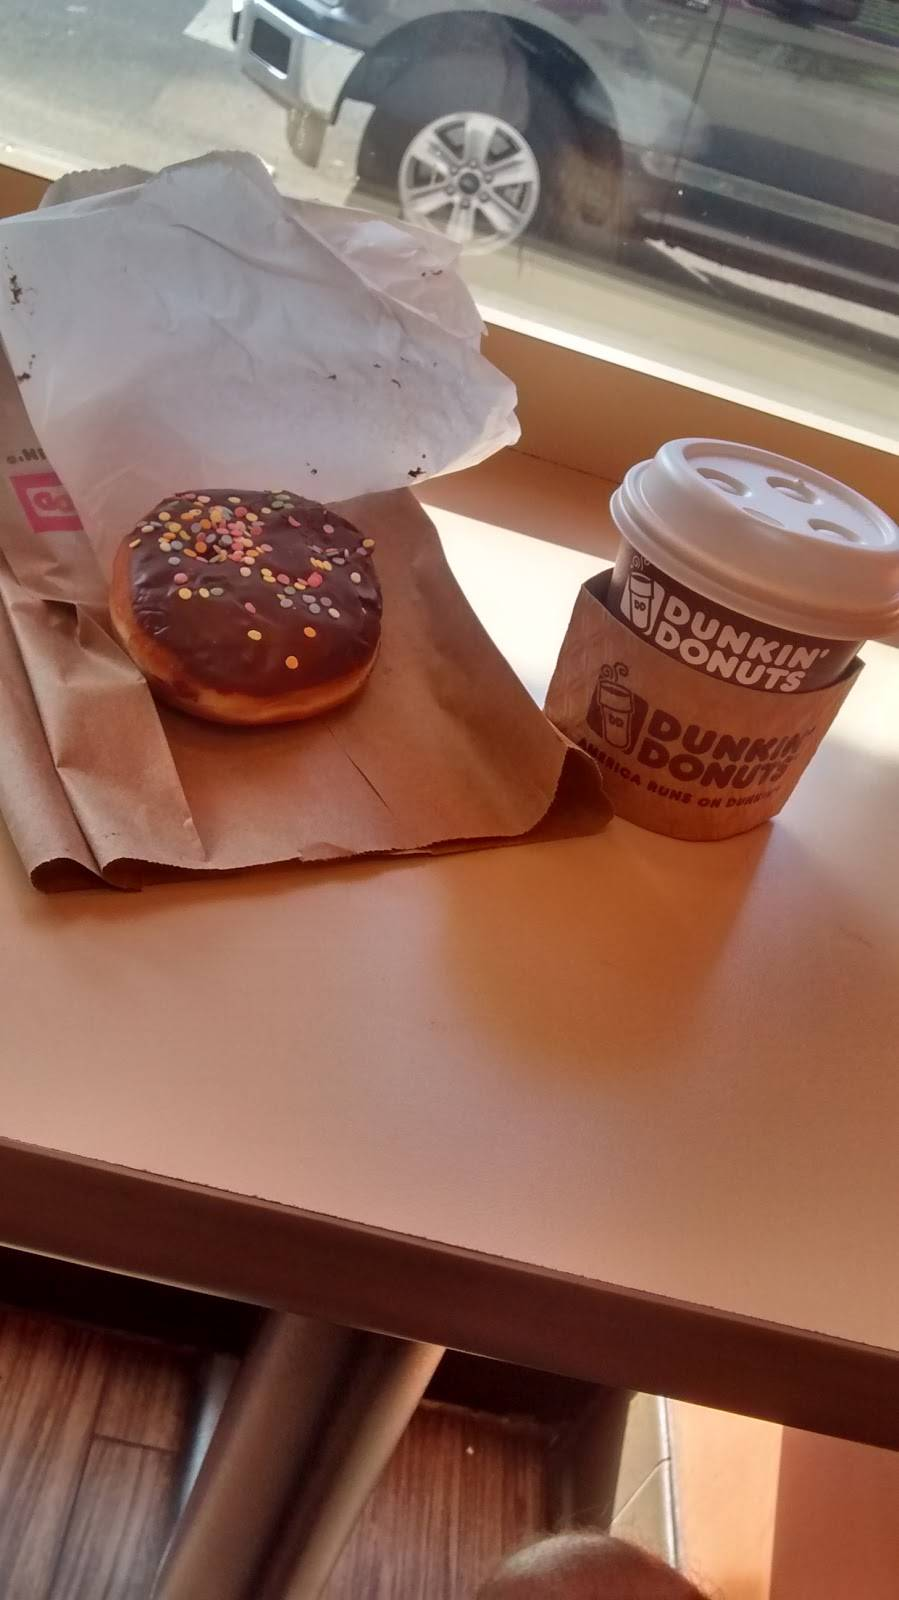 Dunkin Donuts | cafe | 1964 3rd Ave, New York, NY 10029, USA | 2123699610 OR +1 212-369-9610